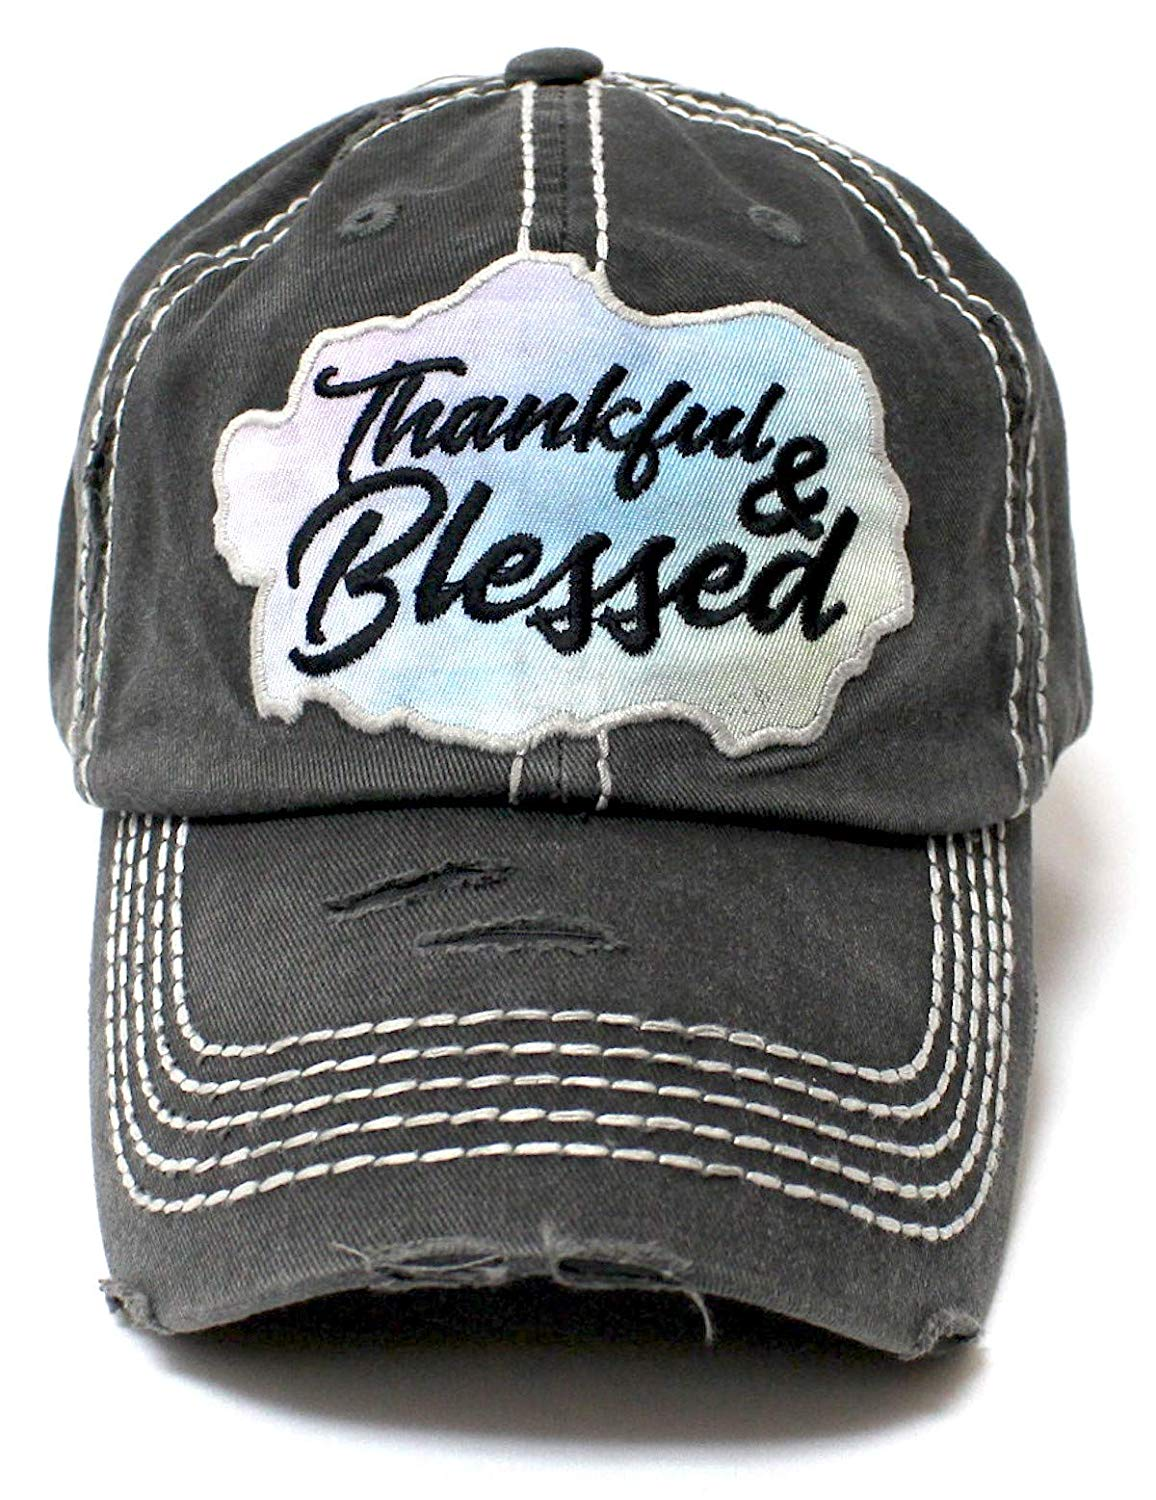 CAPS 'N VINTAGE Charcoal Blk Thankful & Blessed Chrome Patch Embroidery Hat - Caps 'N Vintage